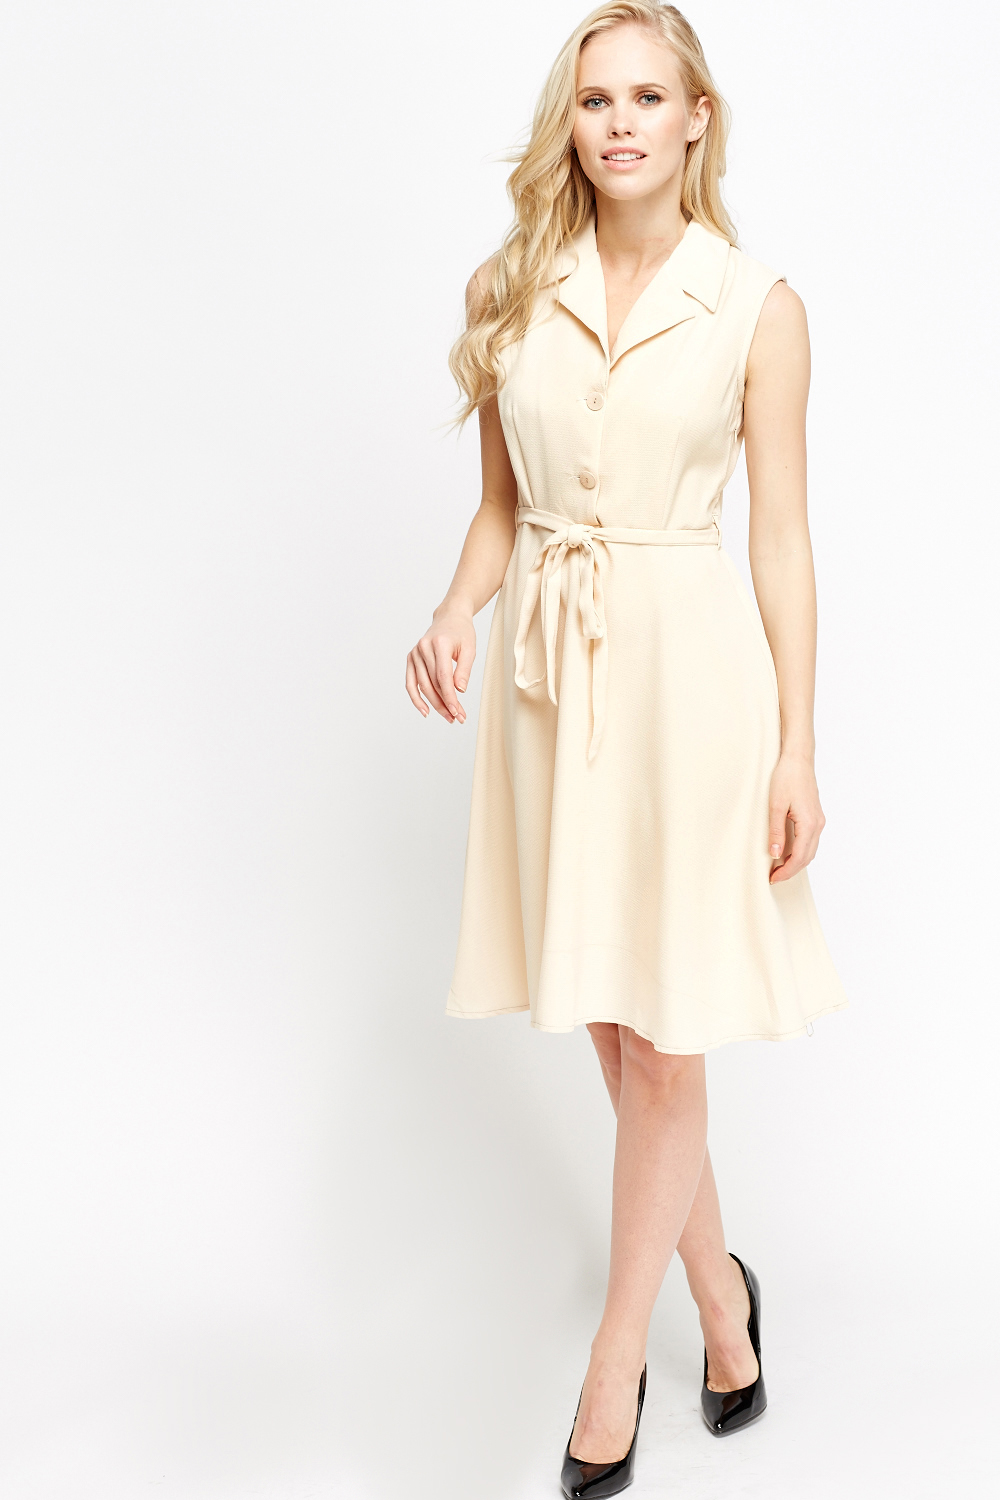 c75e77bc60a9 Midi Button Front Skater Dress - Just £5